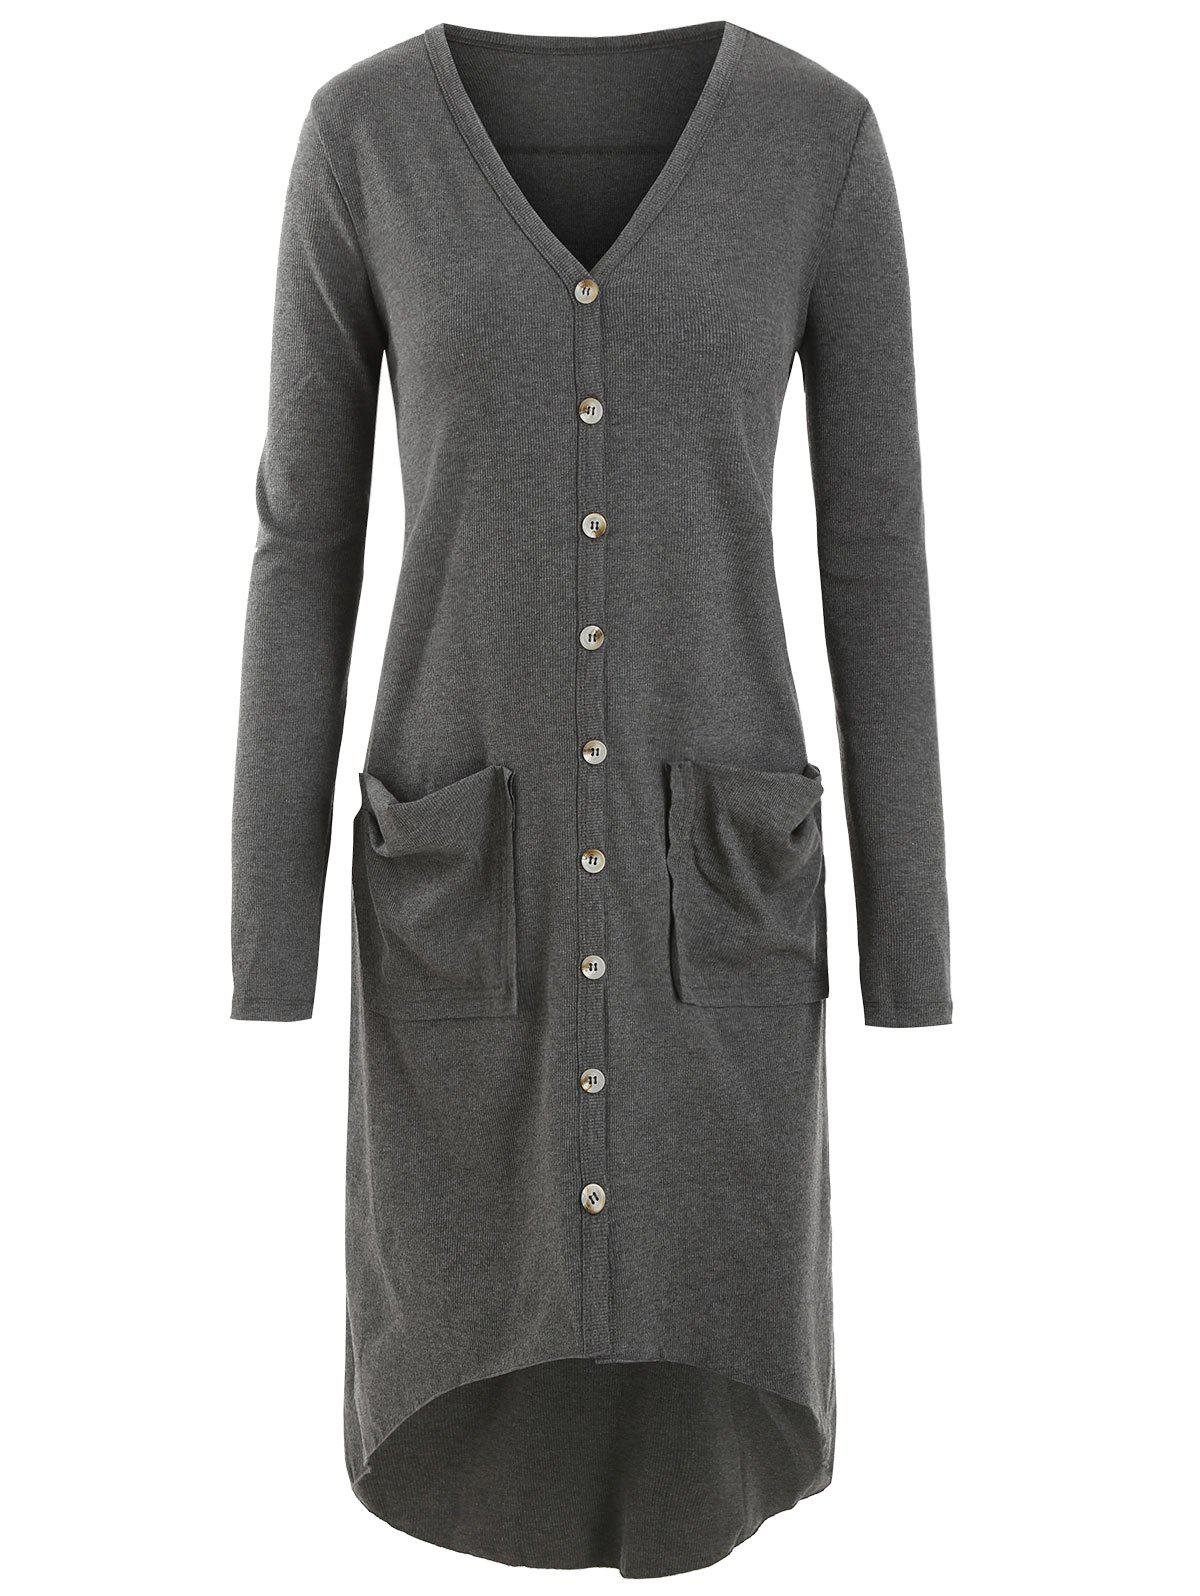 Button Up Pockets High Low Ribbed Plus Size Cardigan - GRAY L